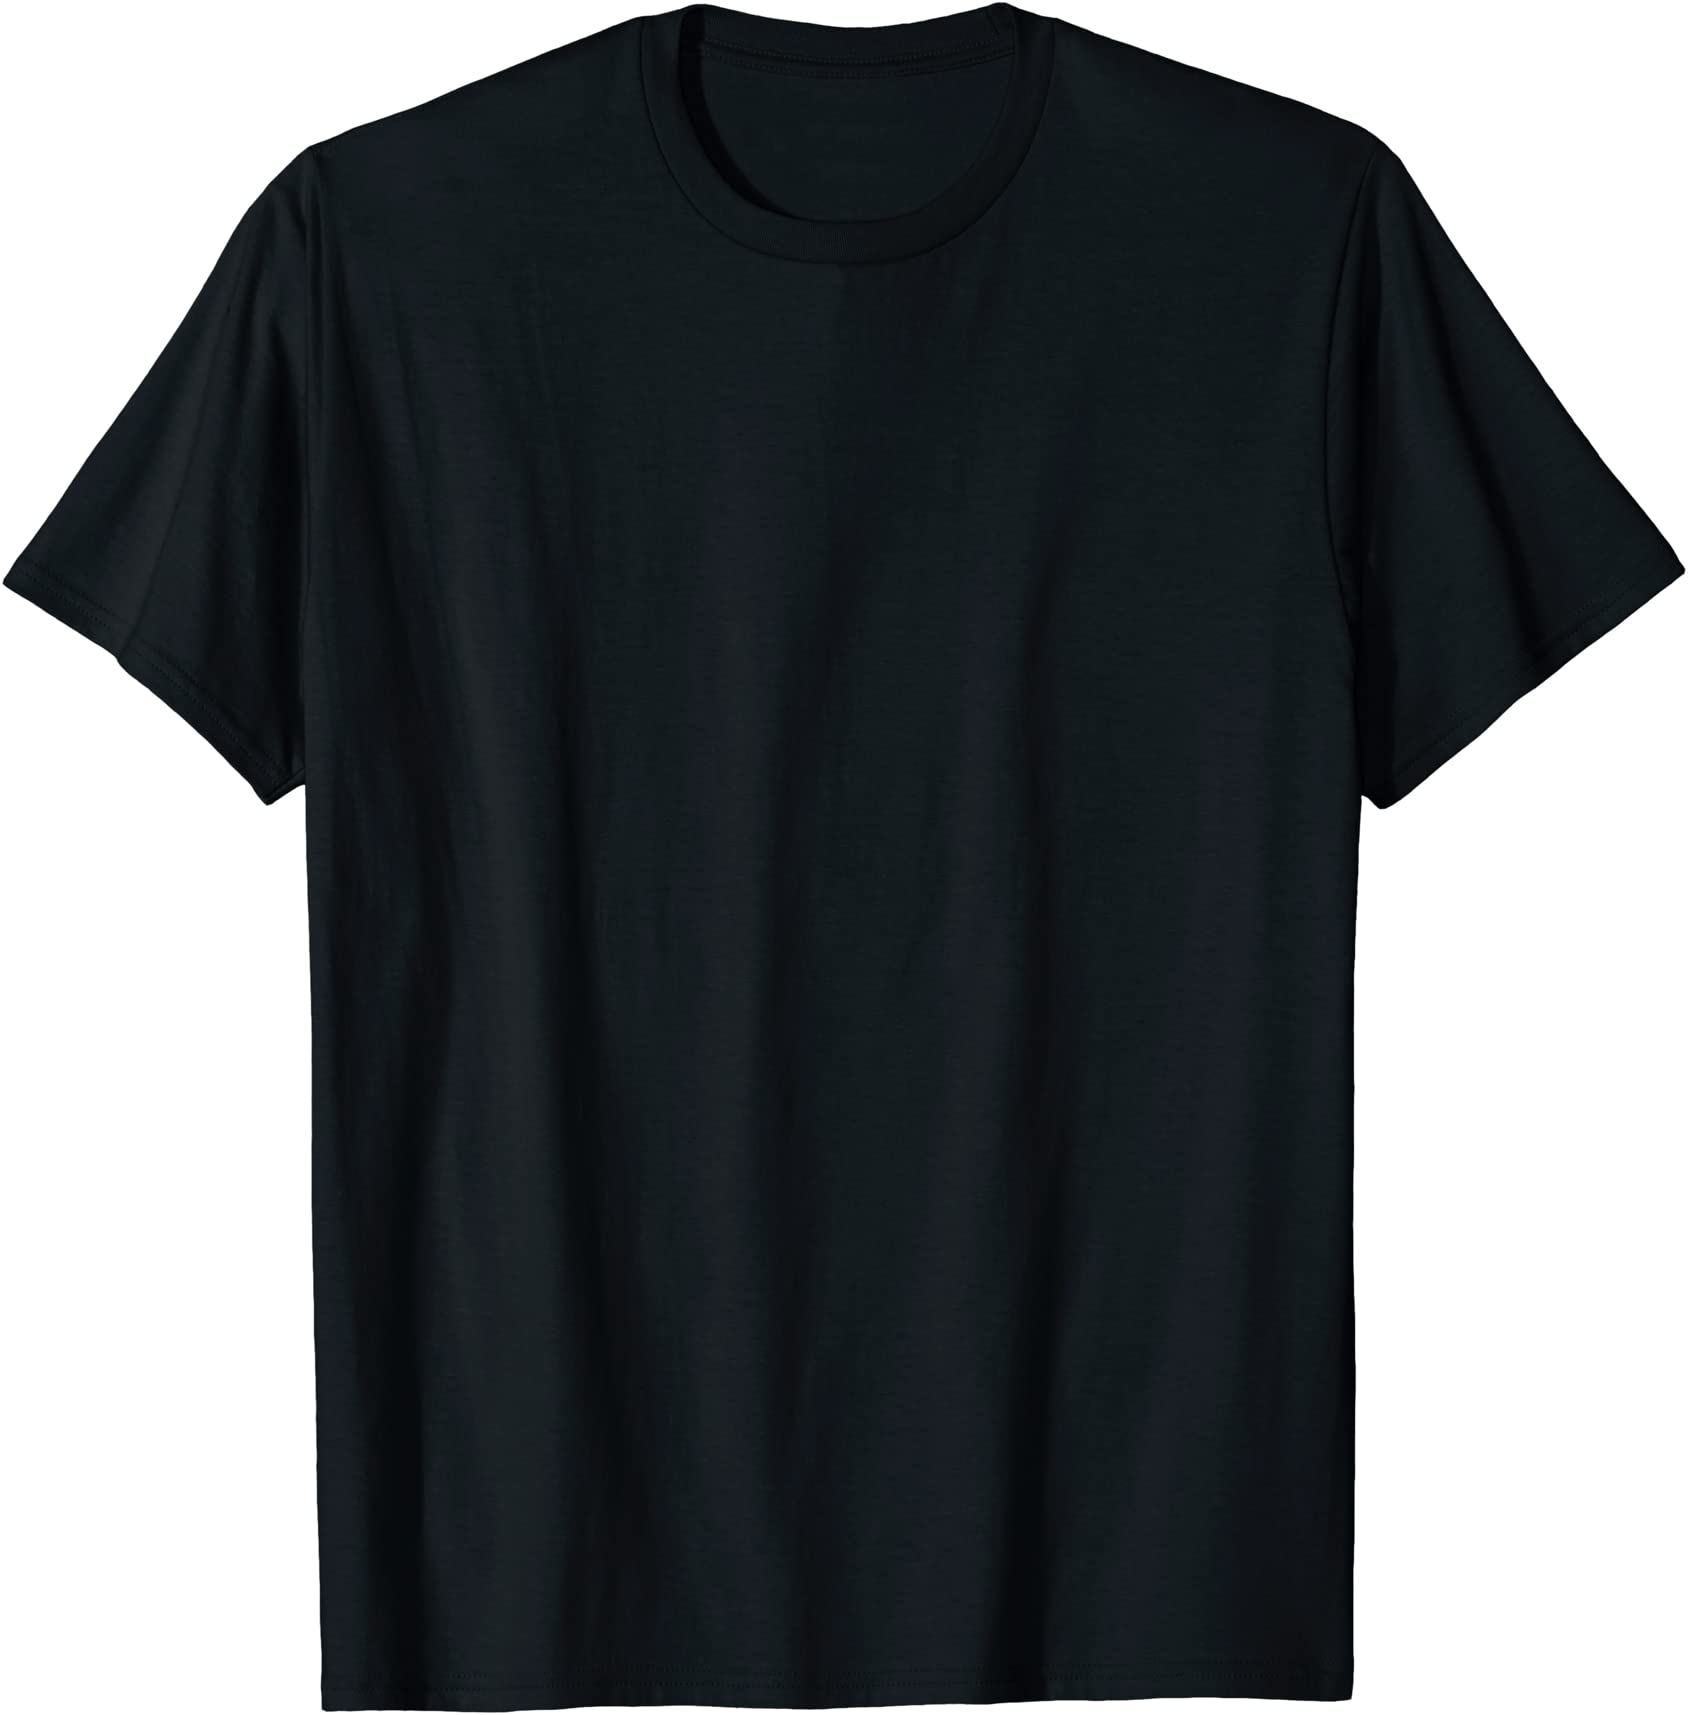 I See A Little Silhouetto Of A Man  Mango Queen Mens T-Shirt Black